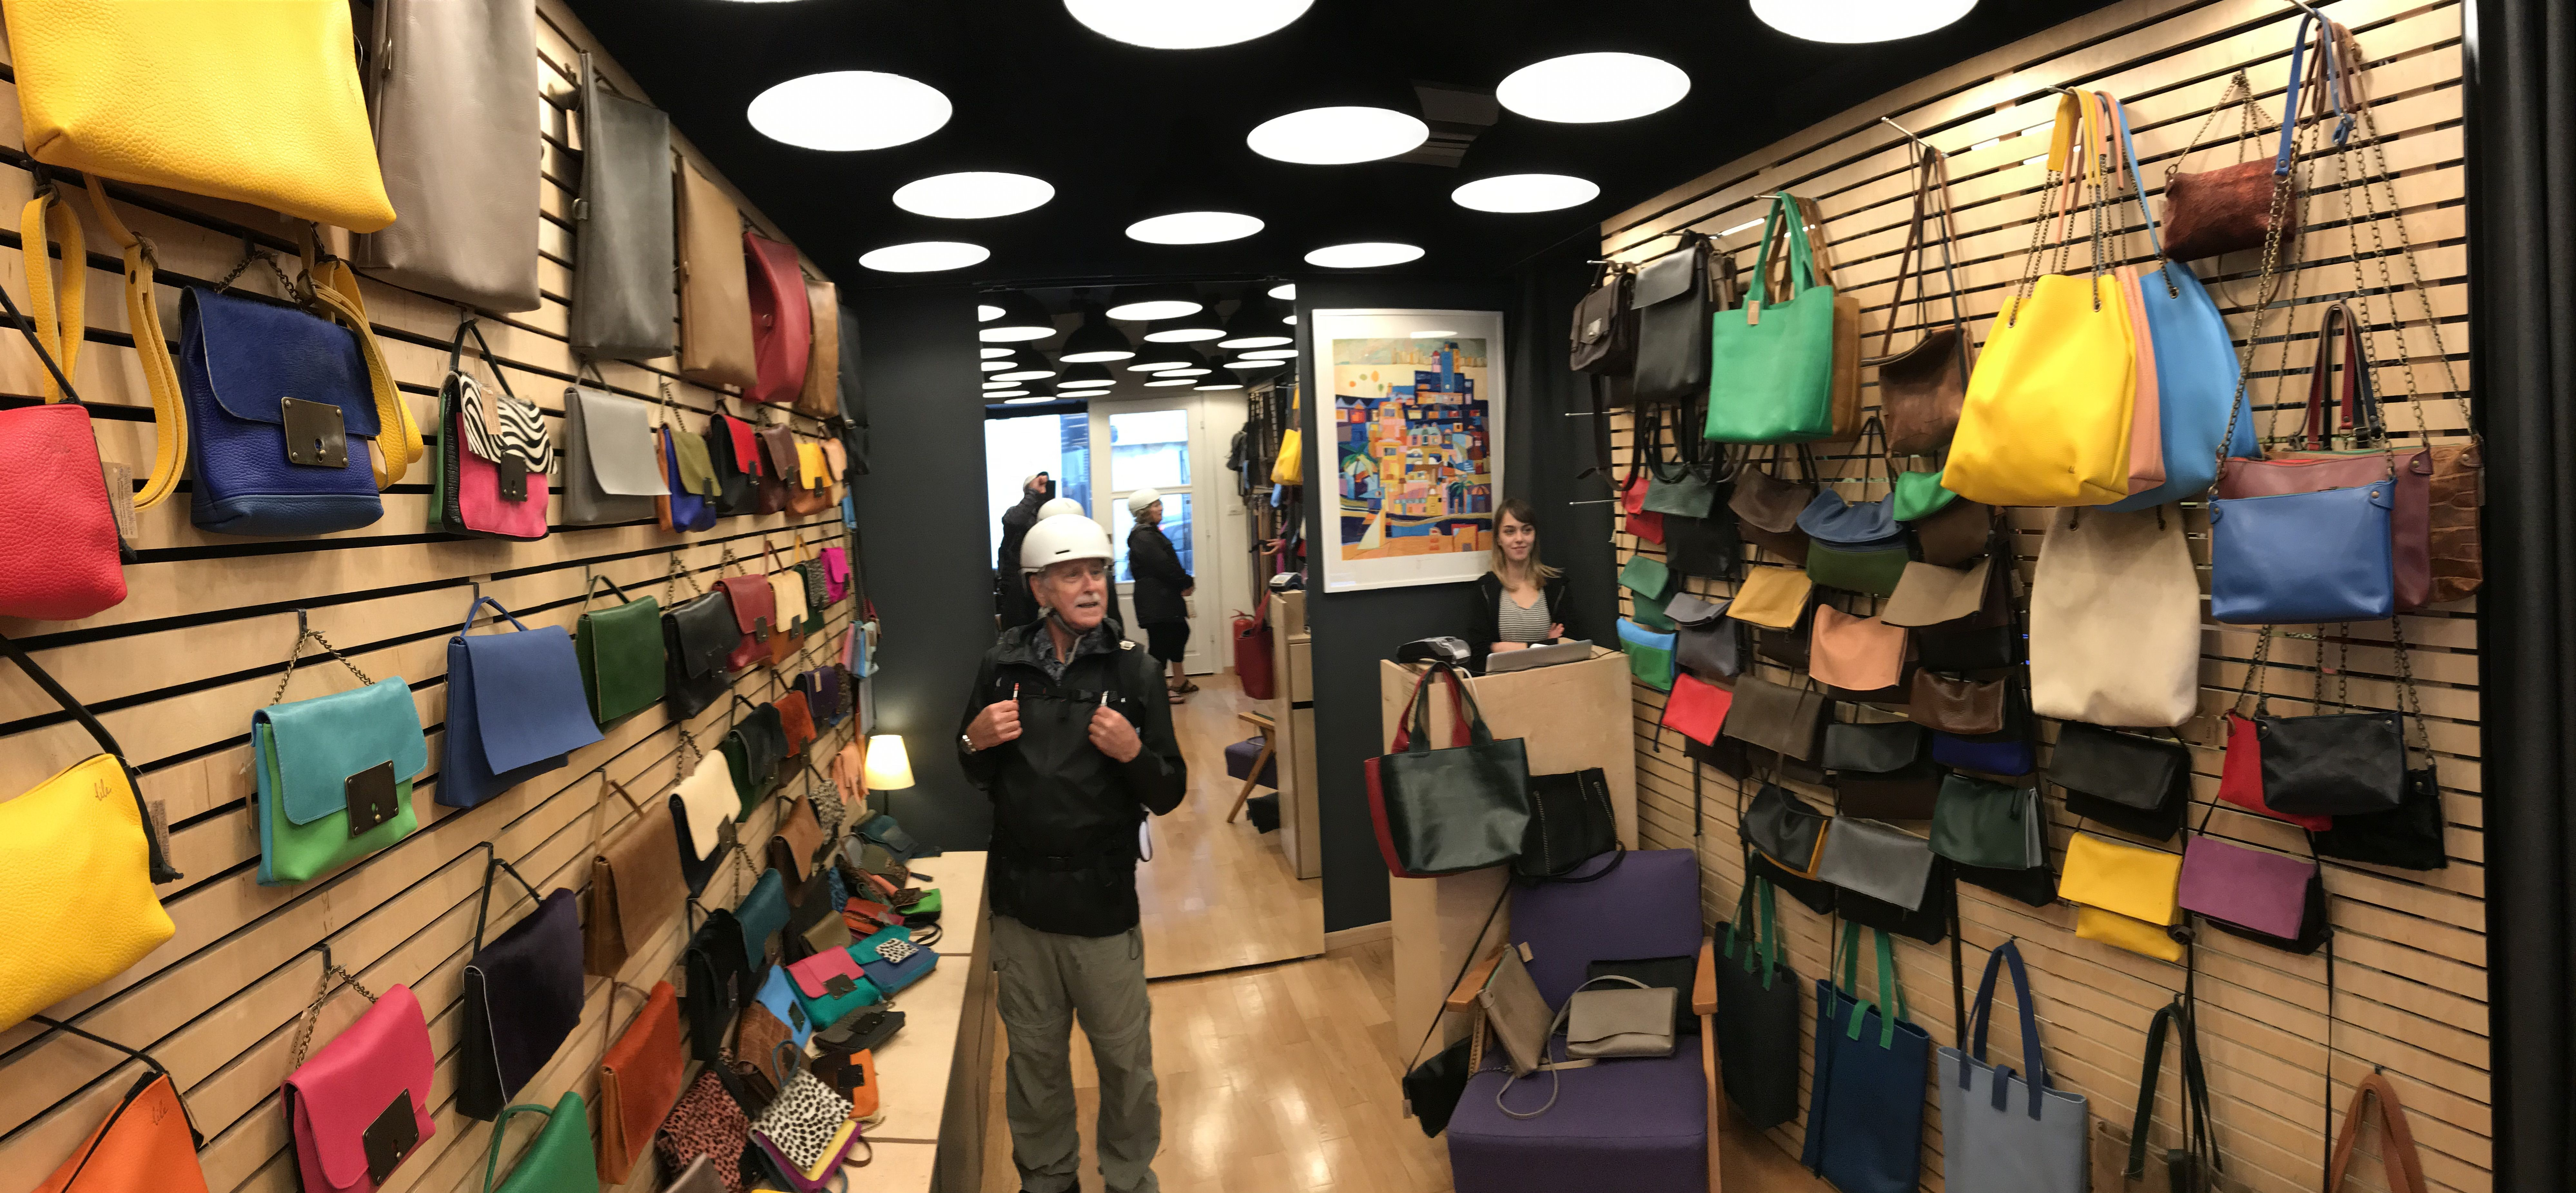 Forget Your Wife Dragging You Into A Store This Store You Will Want To Go In Yourself Surrounded By Colourful Designs And Intricate C Bike Tour Zagreb Tours